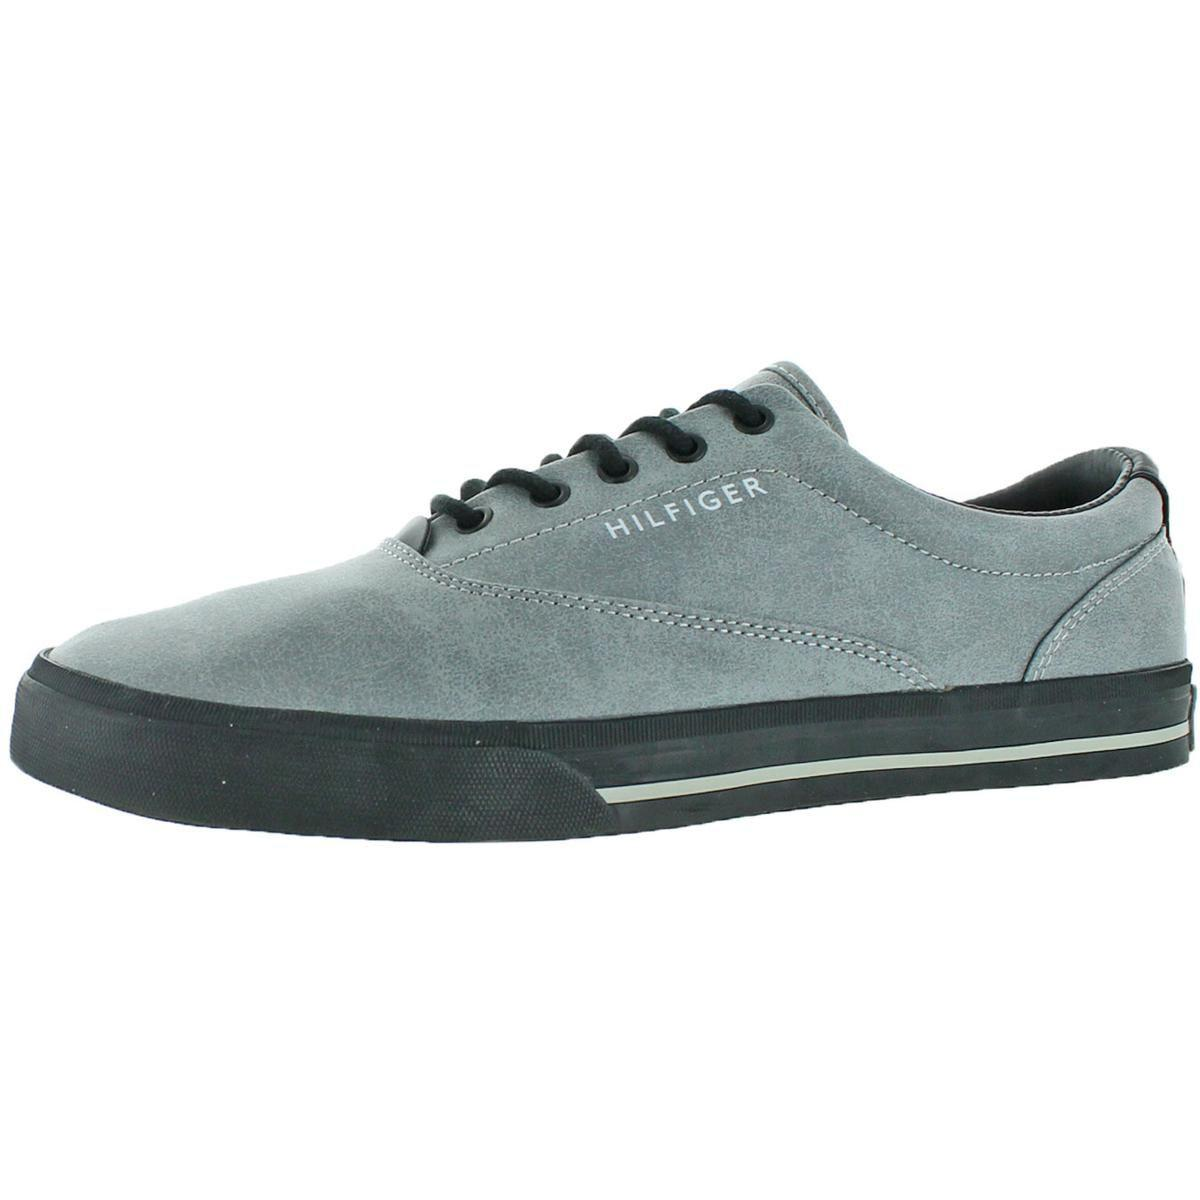 0f84009d13 Tommy Hilfiger. Gray Mens Phelipo 2 Faux Leather Vulcanized Fashion Sneakers